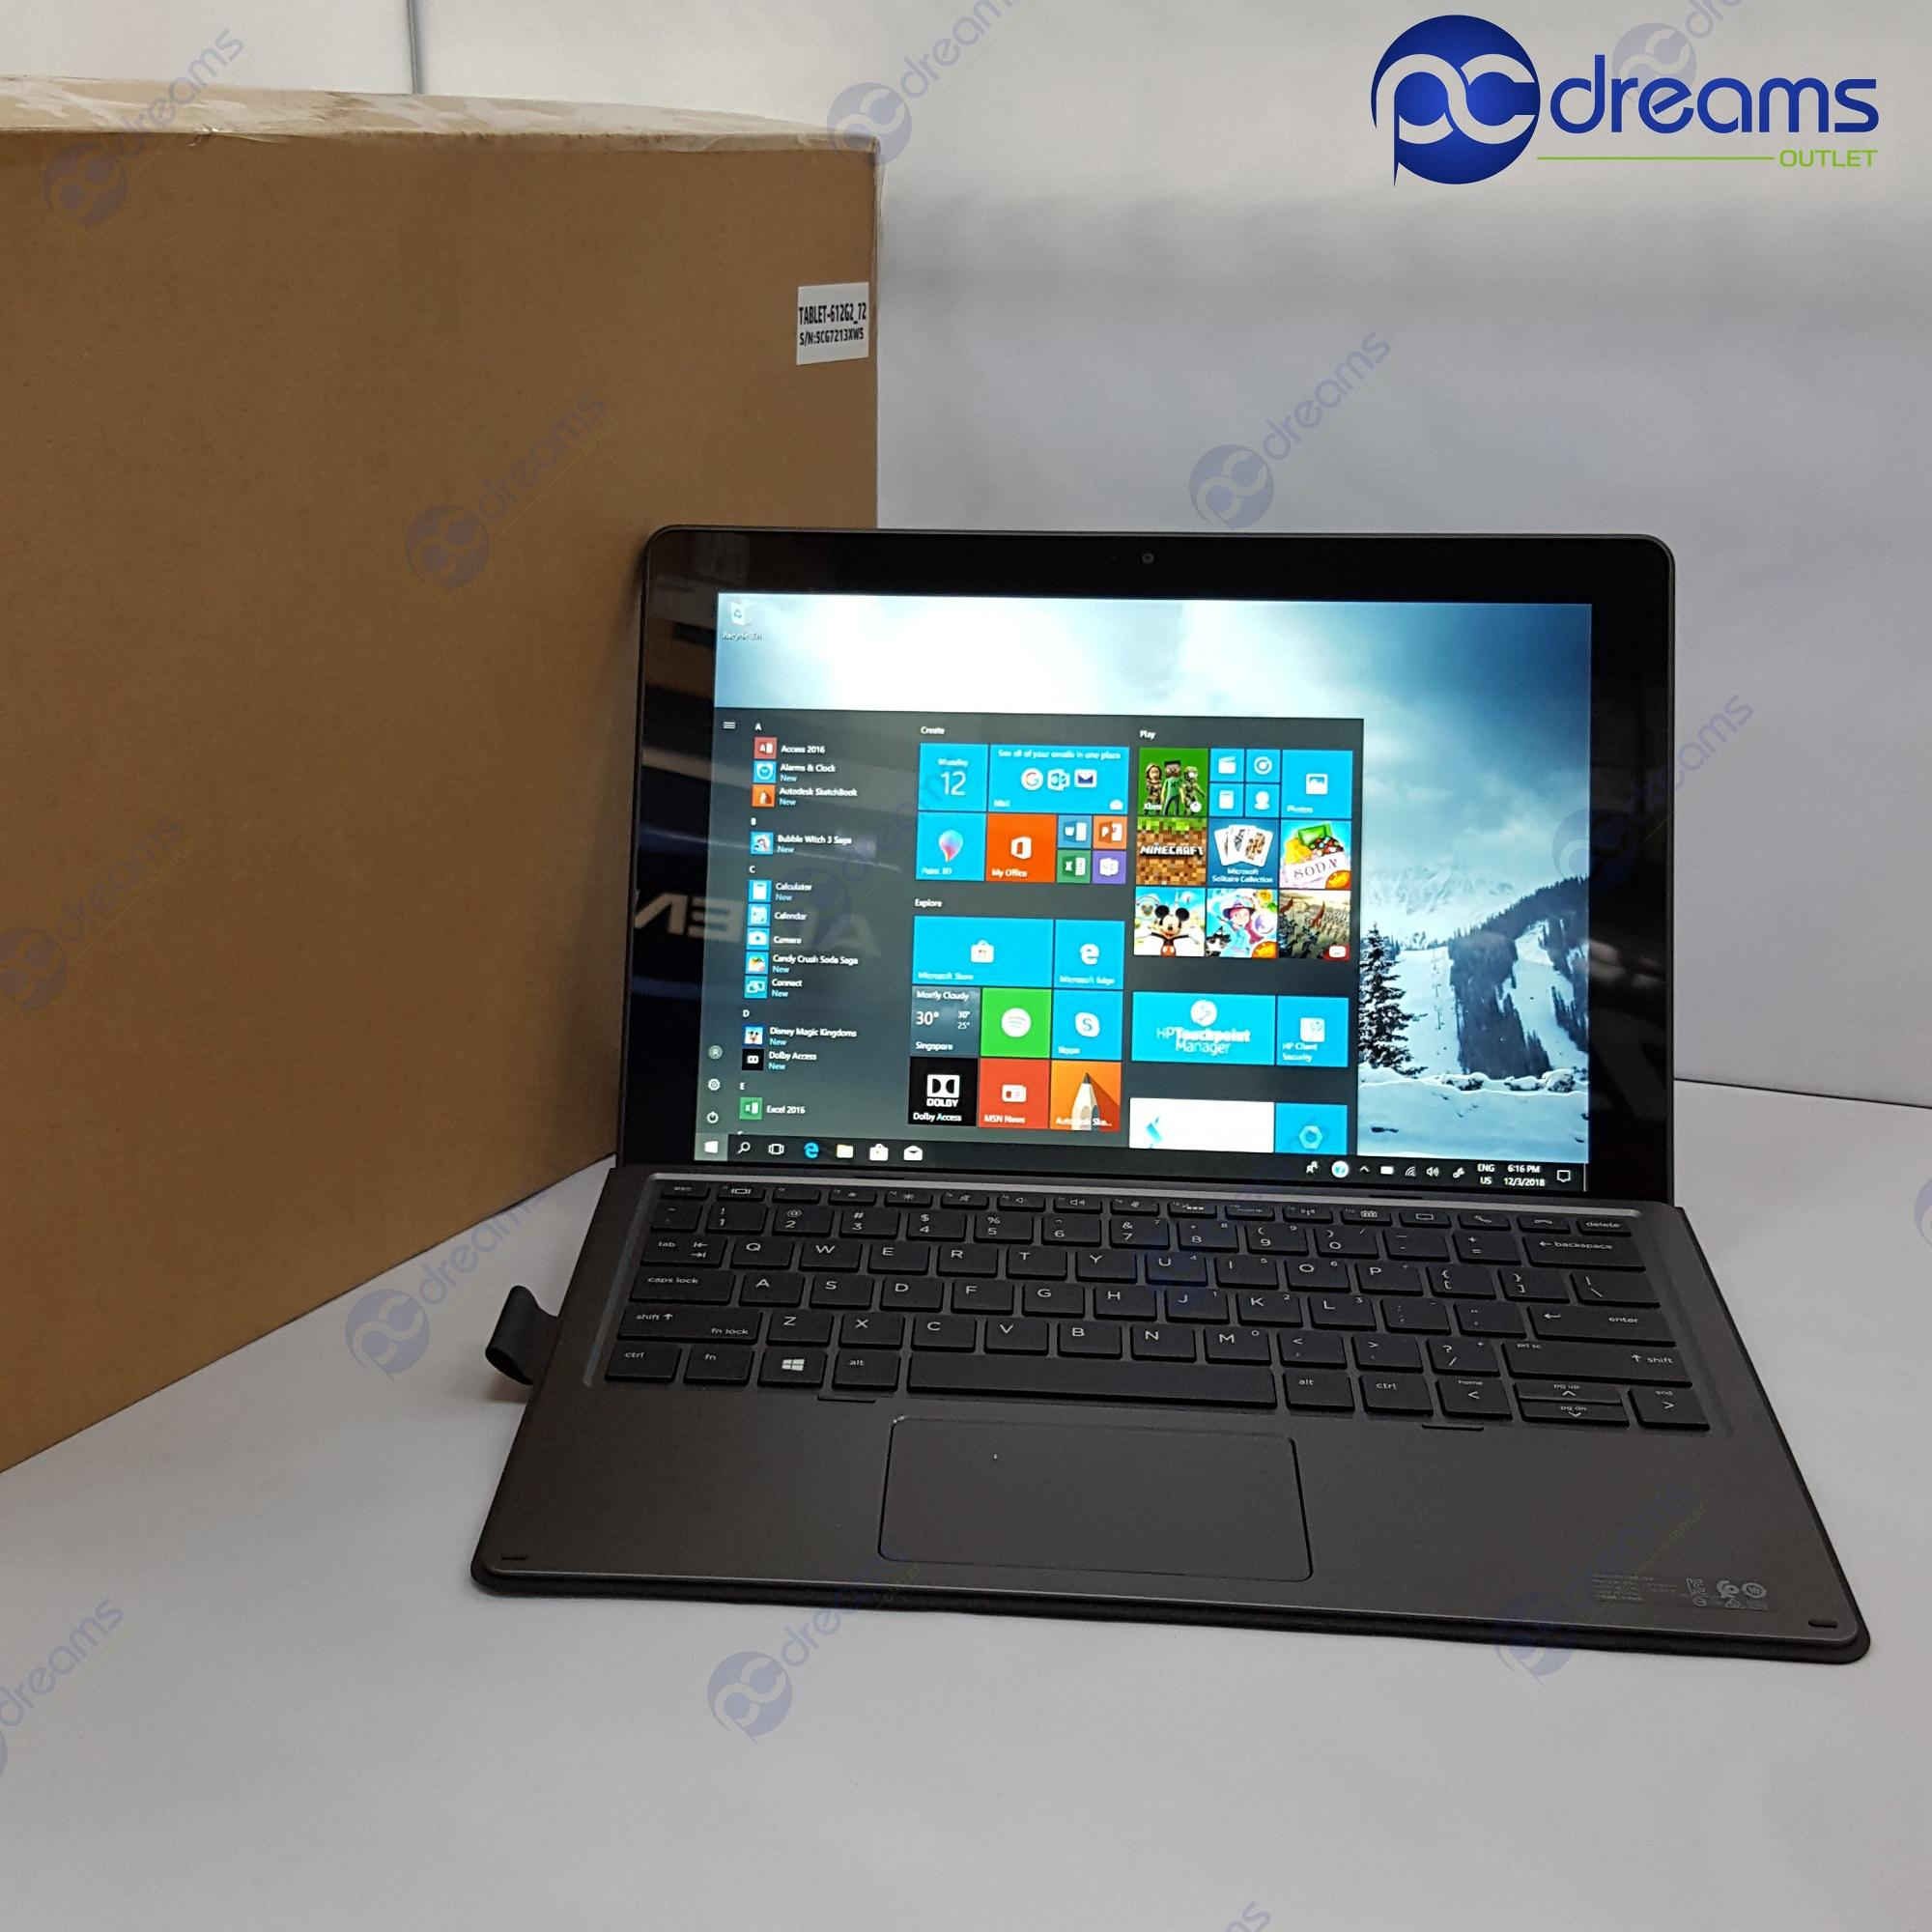 HP PRO X2 612 G2 with Travel Keyboard (X4C20AV) i5-7Y54/8GB/128GB SSD [Premium Refreshed]